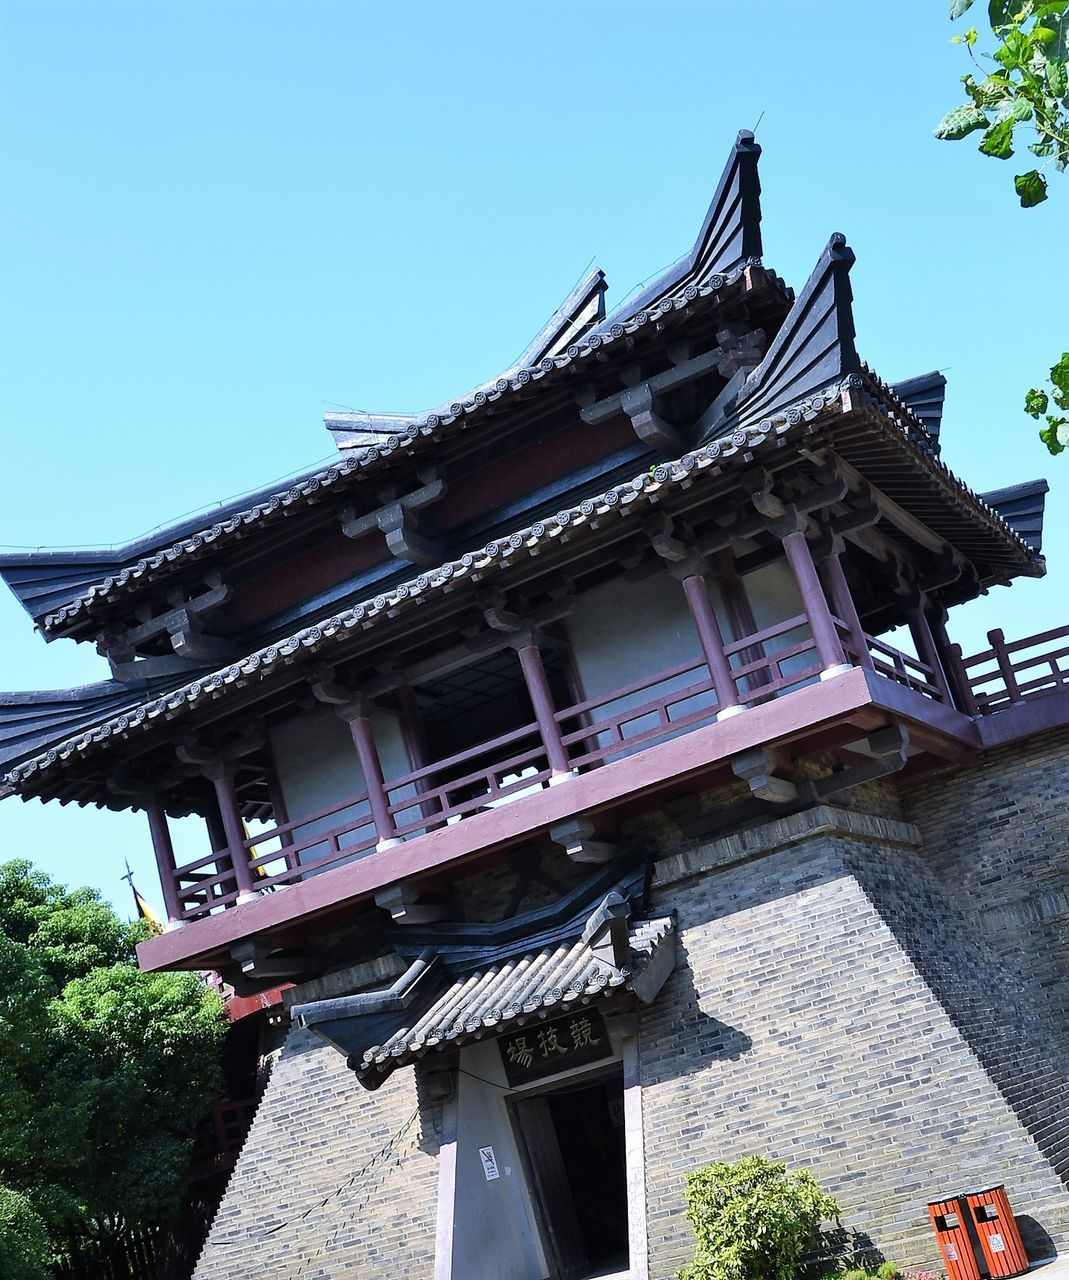 Shot of Ancient Chinese temple pagoda castle ASIA Ancient Architecture East Pagoda Buddhism Building Exterior China Chinese Cultures Religion Sturm Temple Traditional